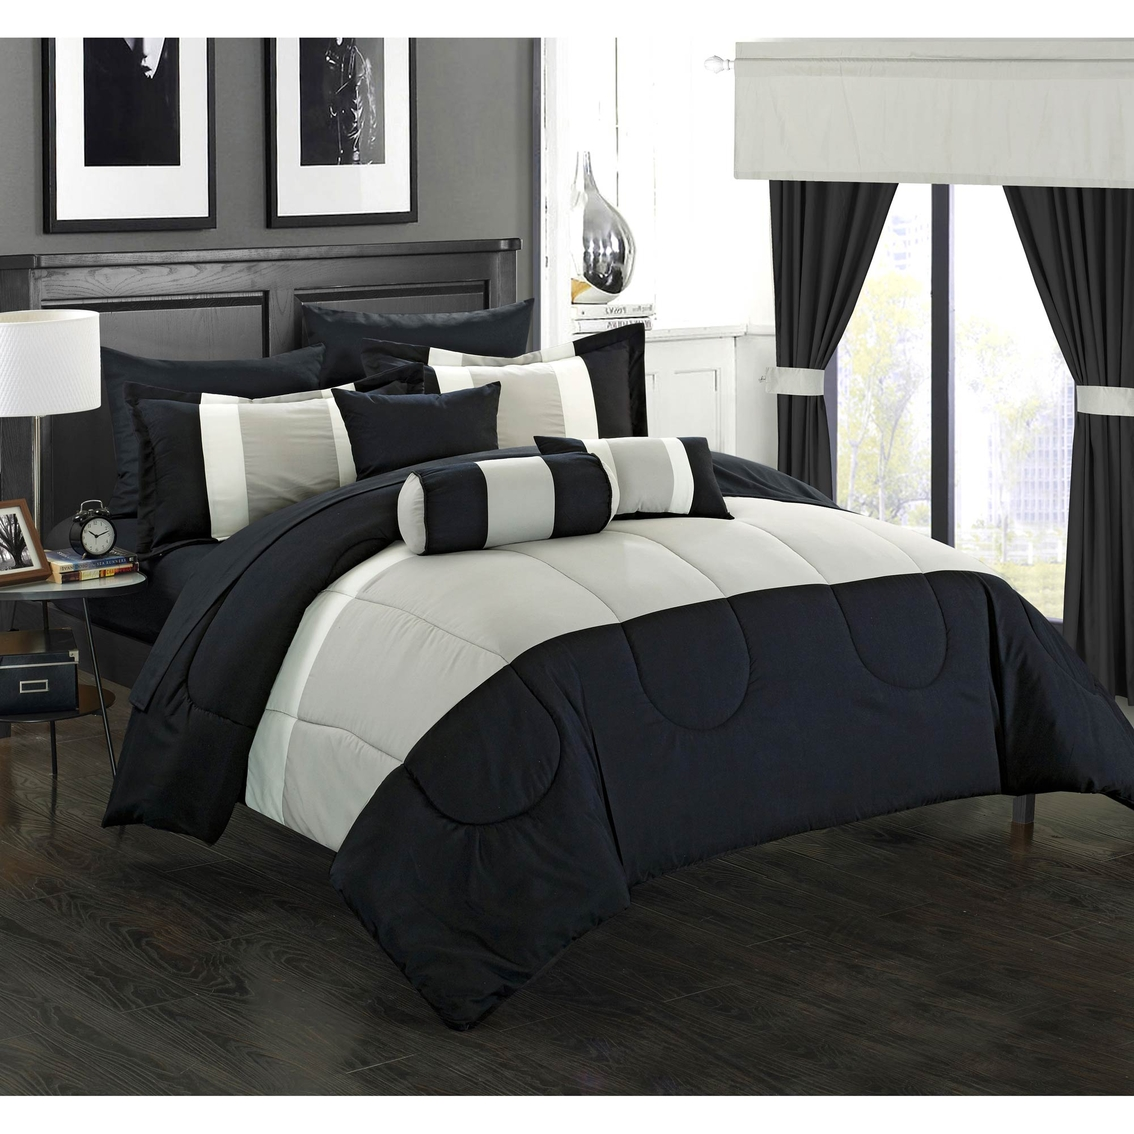 chic home design knightsbridge 20 pc room in a bag bedroom set